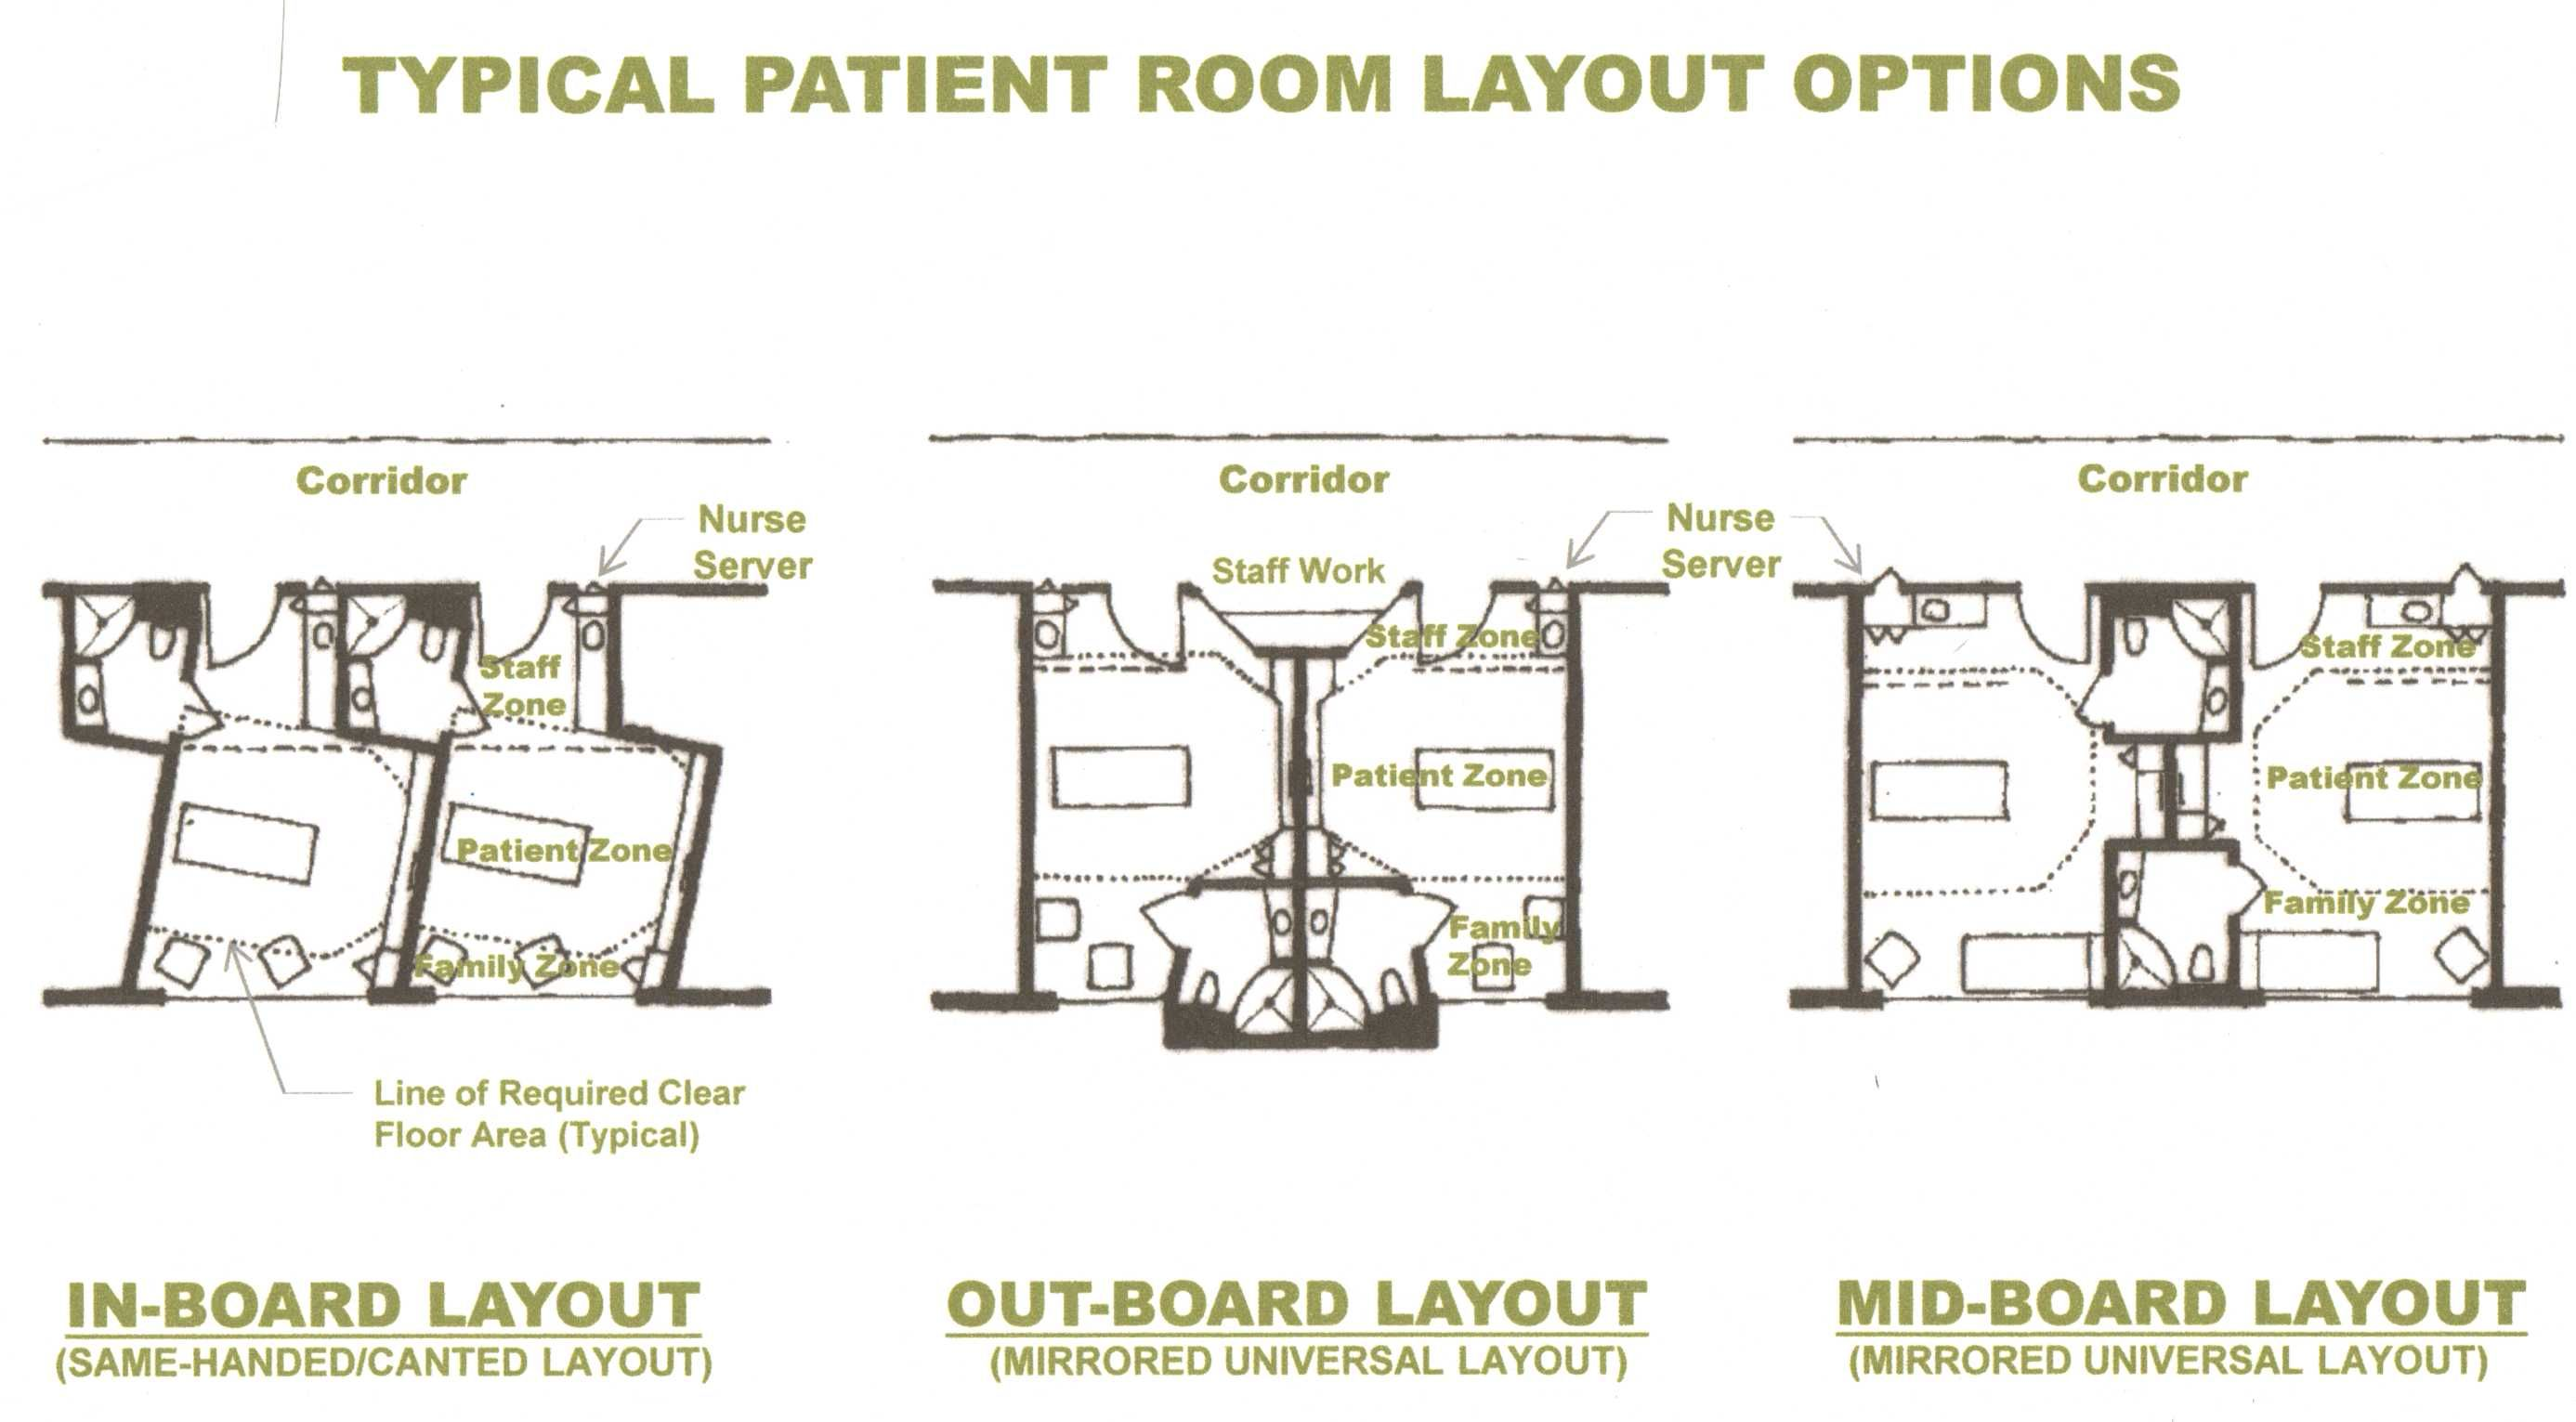 TypicalPatientRoomLayouts | Healthcare Design | Pinterest | Hospital Architecture, Hospital